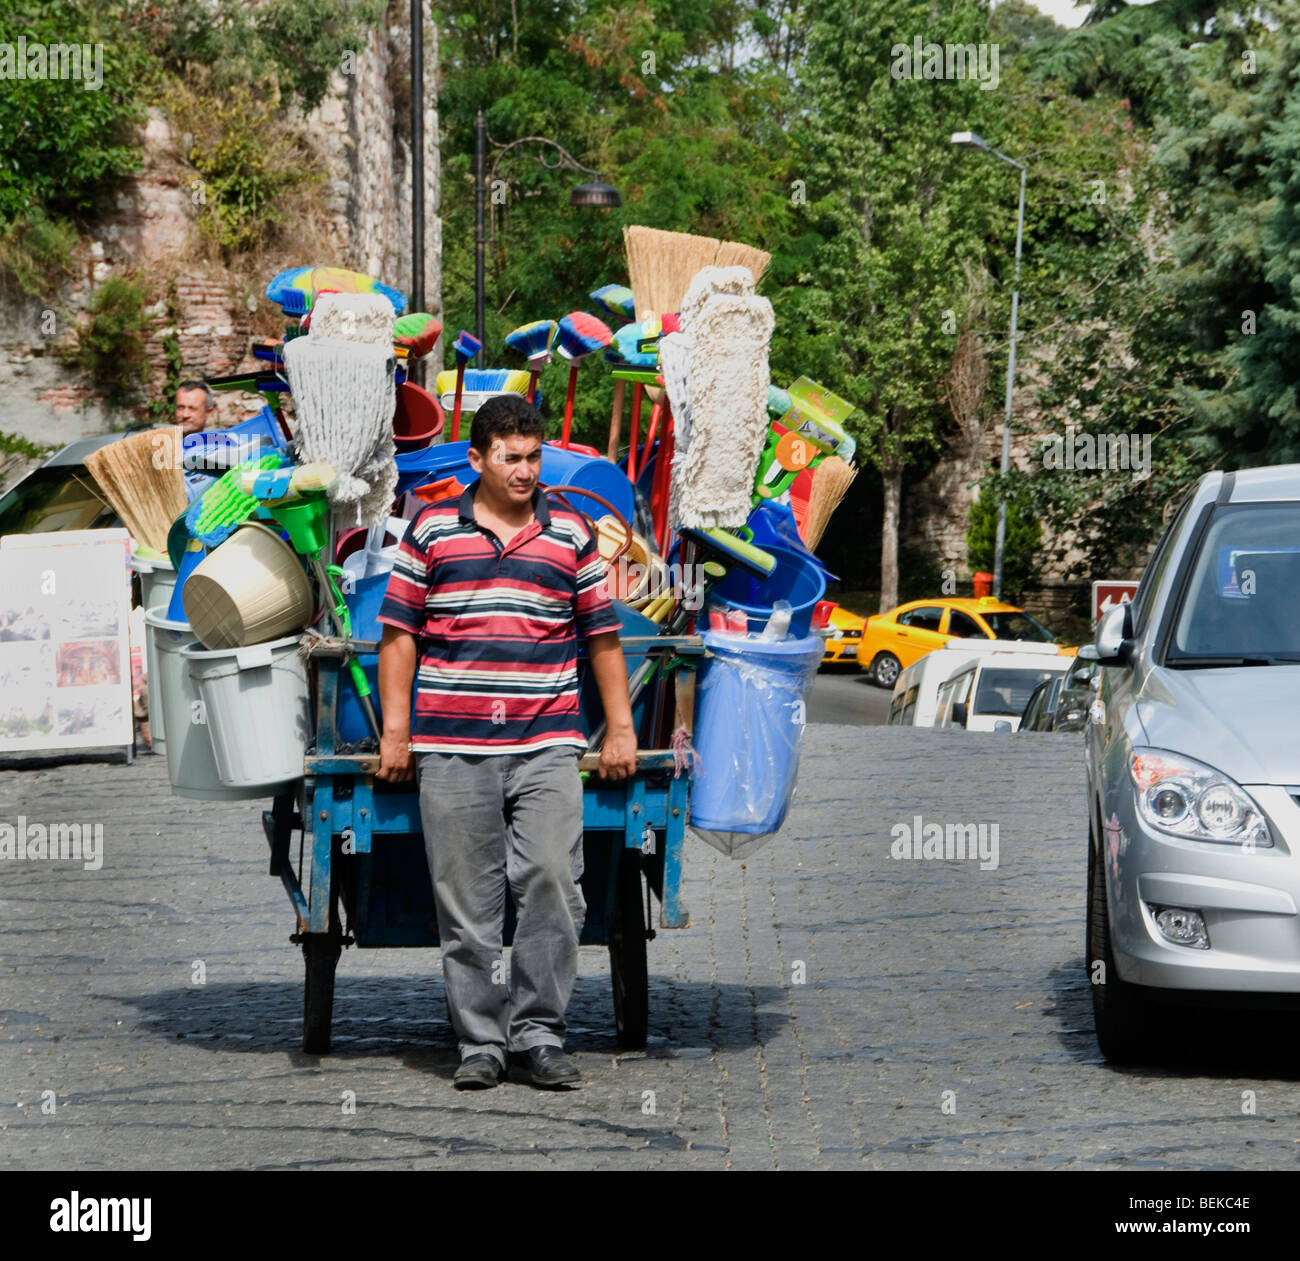 Istanbul Turkey hawking trader peddler hawker sale - Stock Image